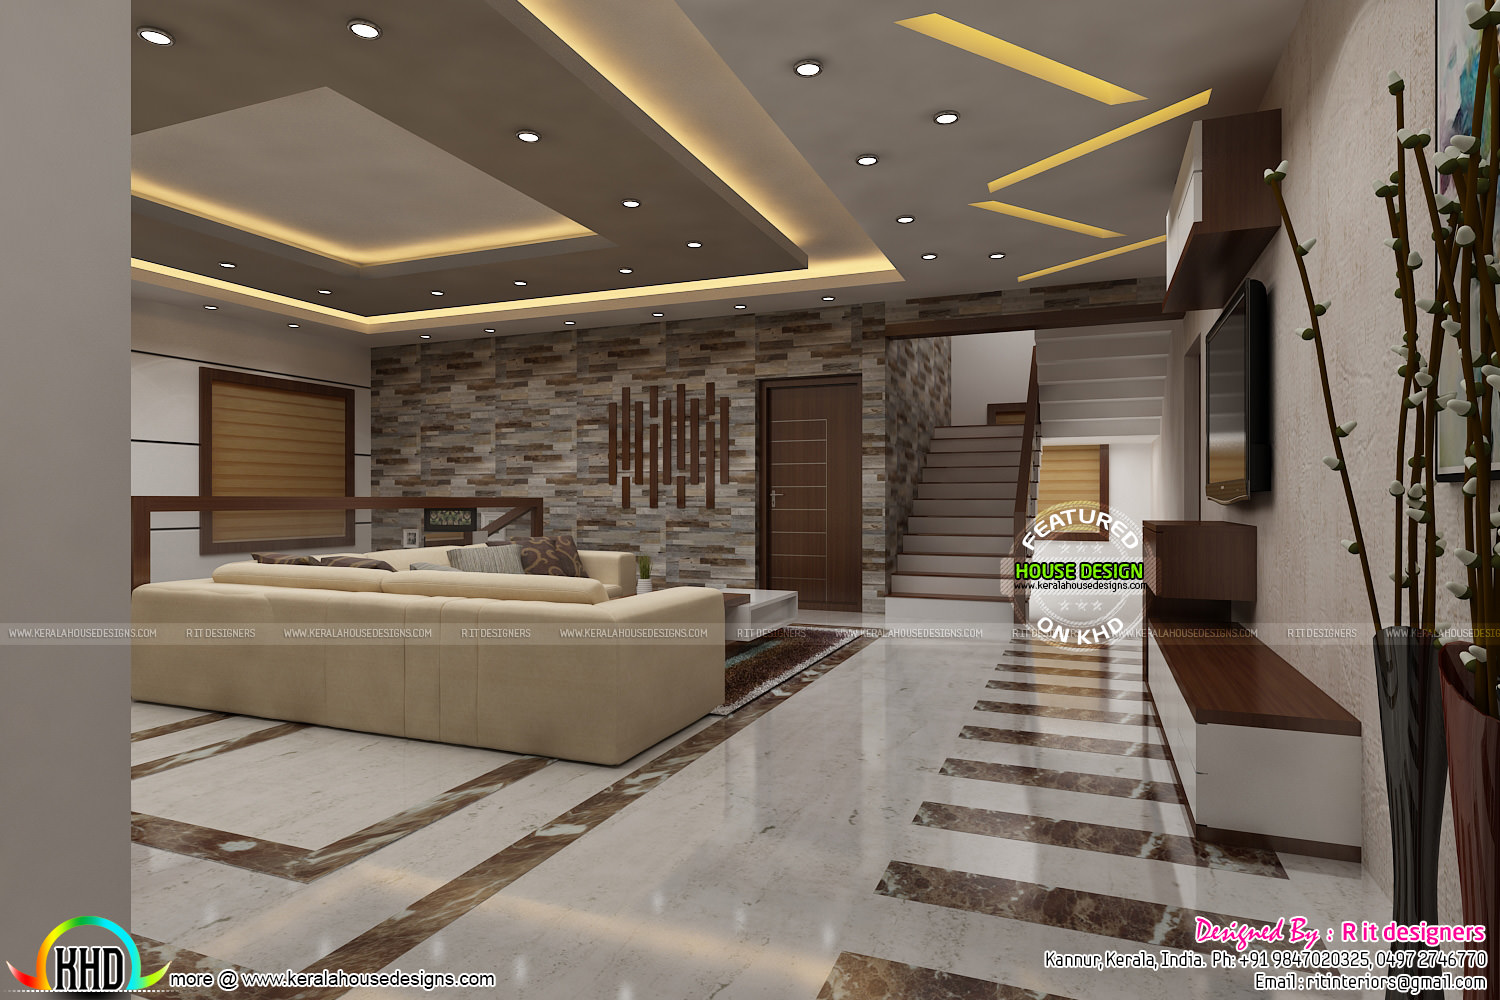 Most Modern Kerala Living Room Interior Kerala Home Design And Floor Plans